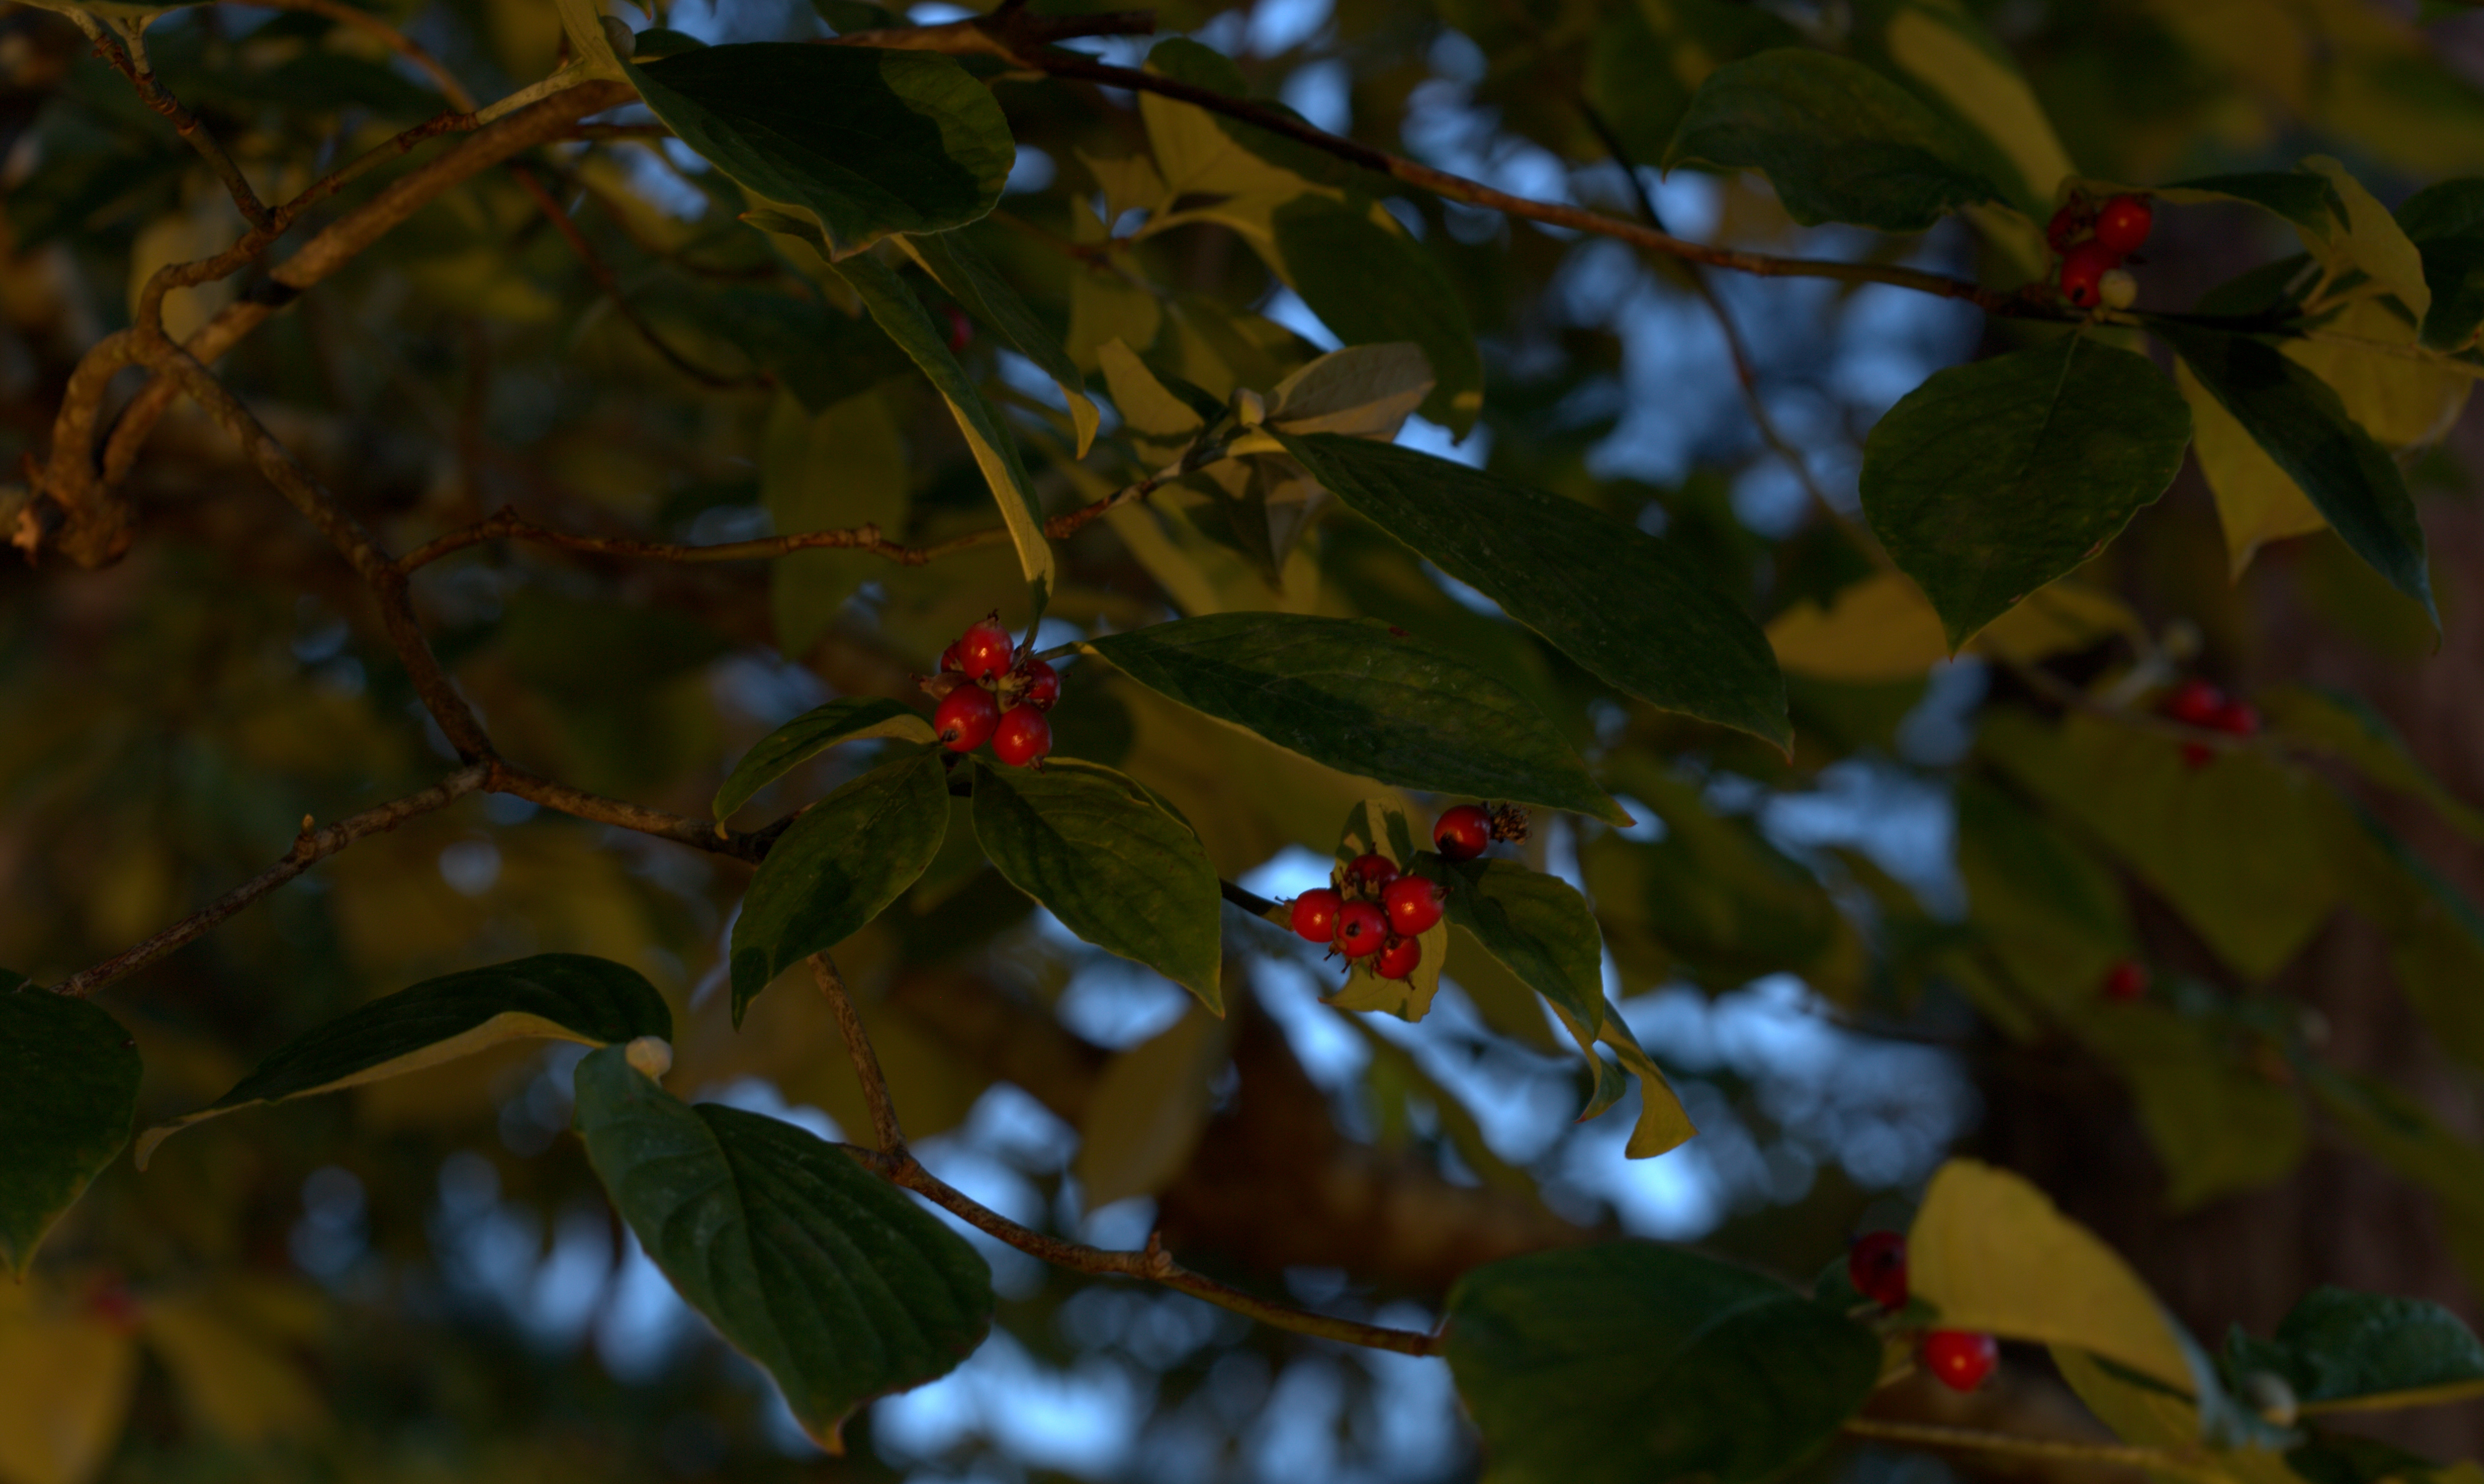 Photography ~ Dogwood berries at twilight and at night, 09/19